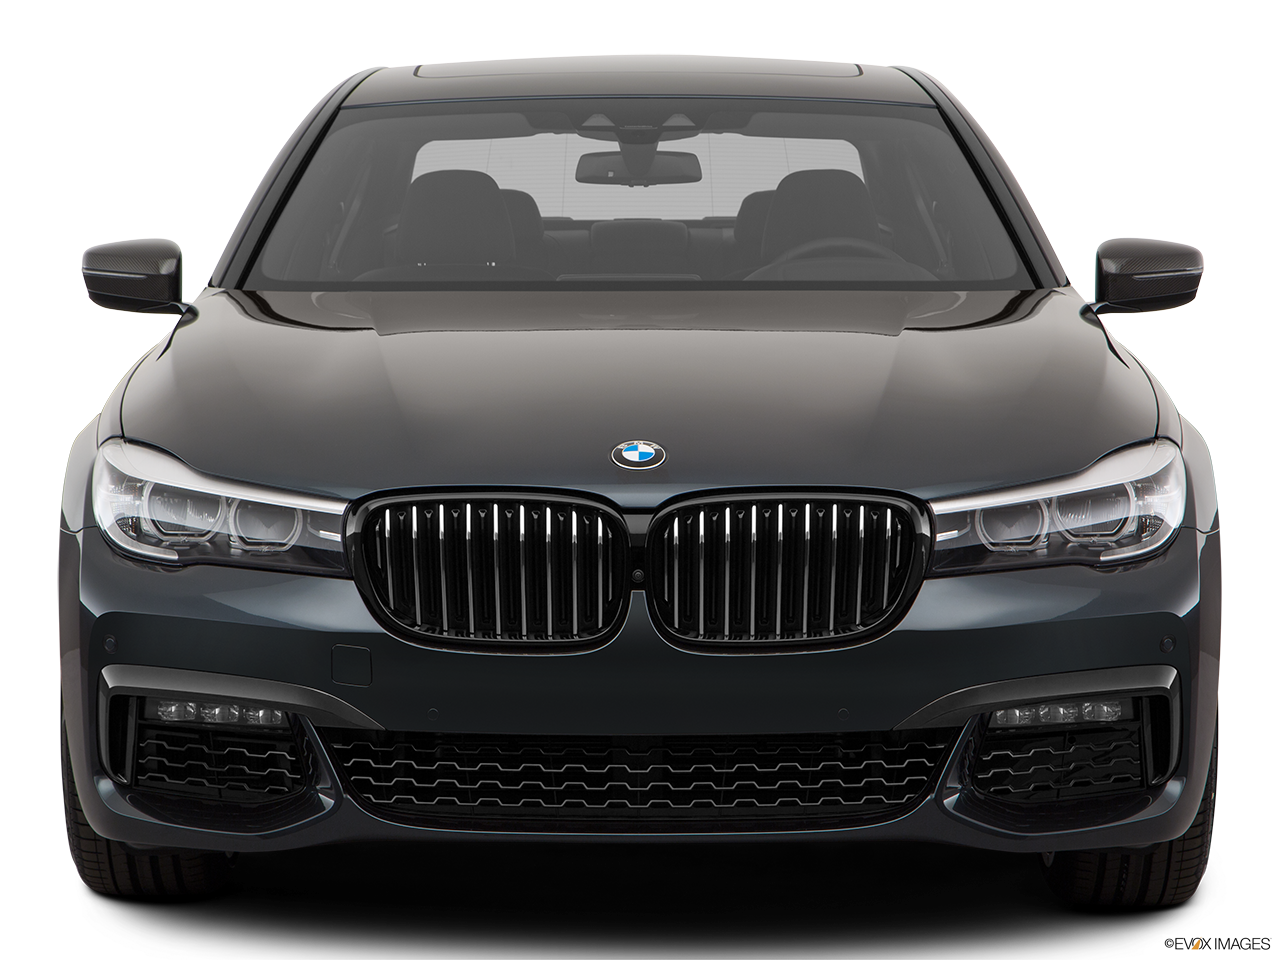 Front view of the BMW 740e